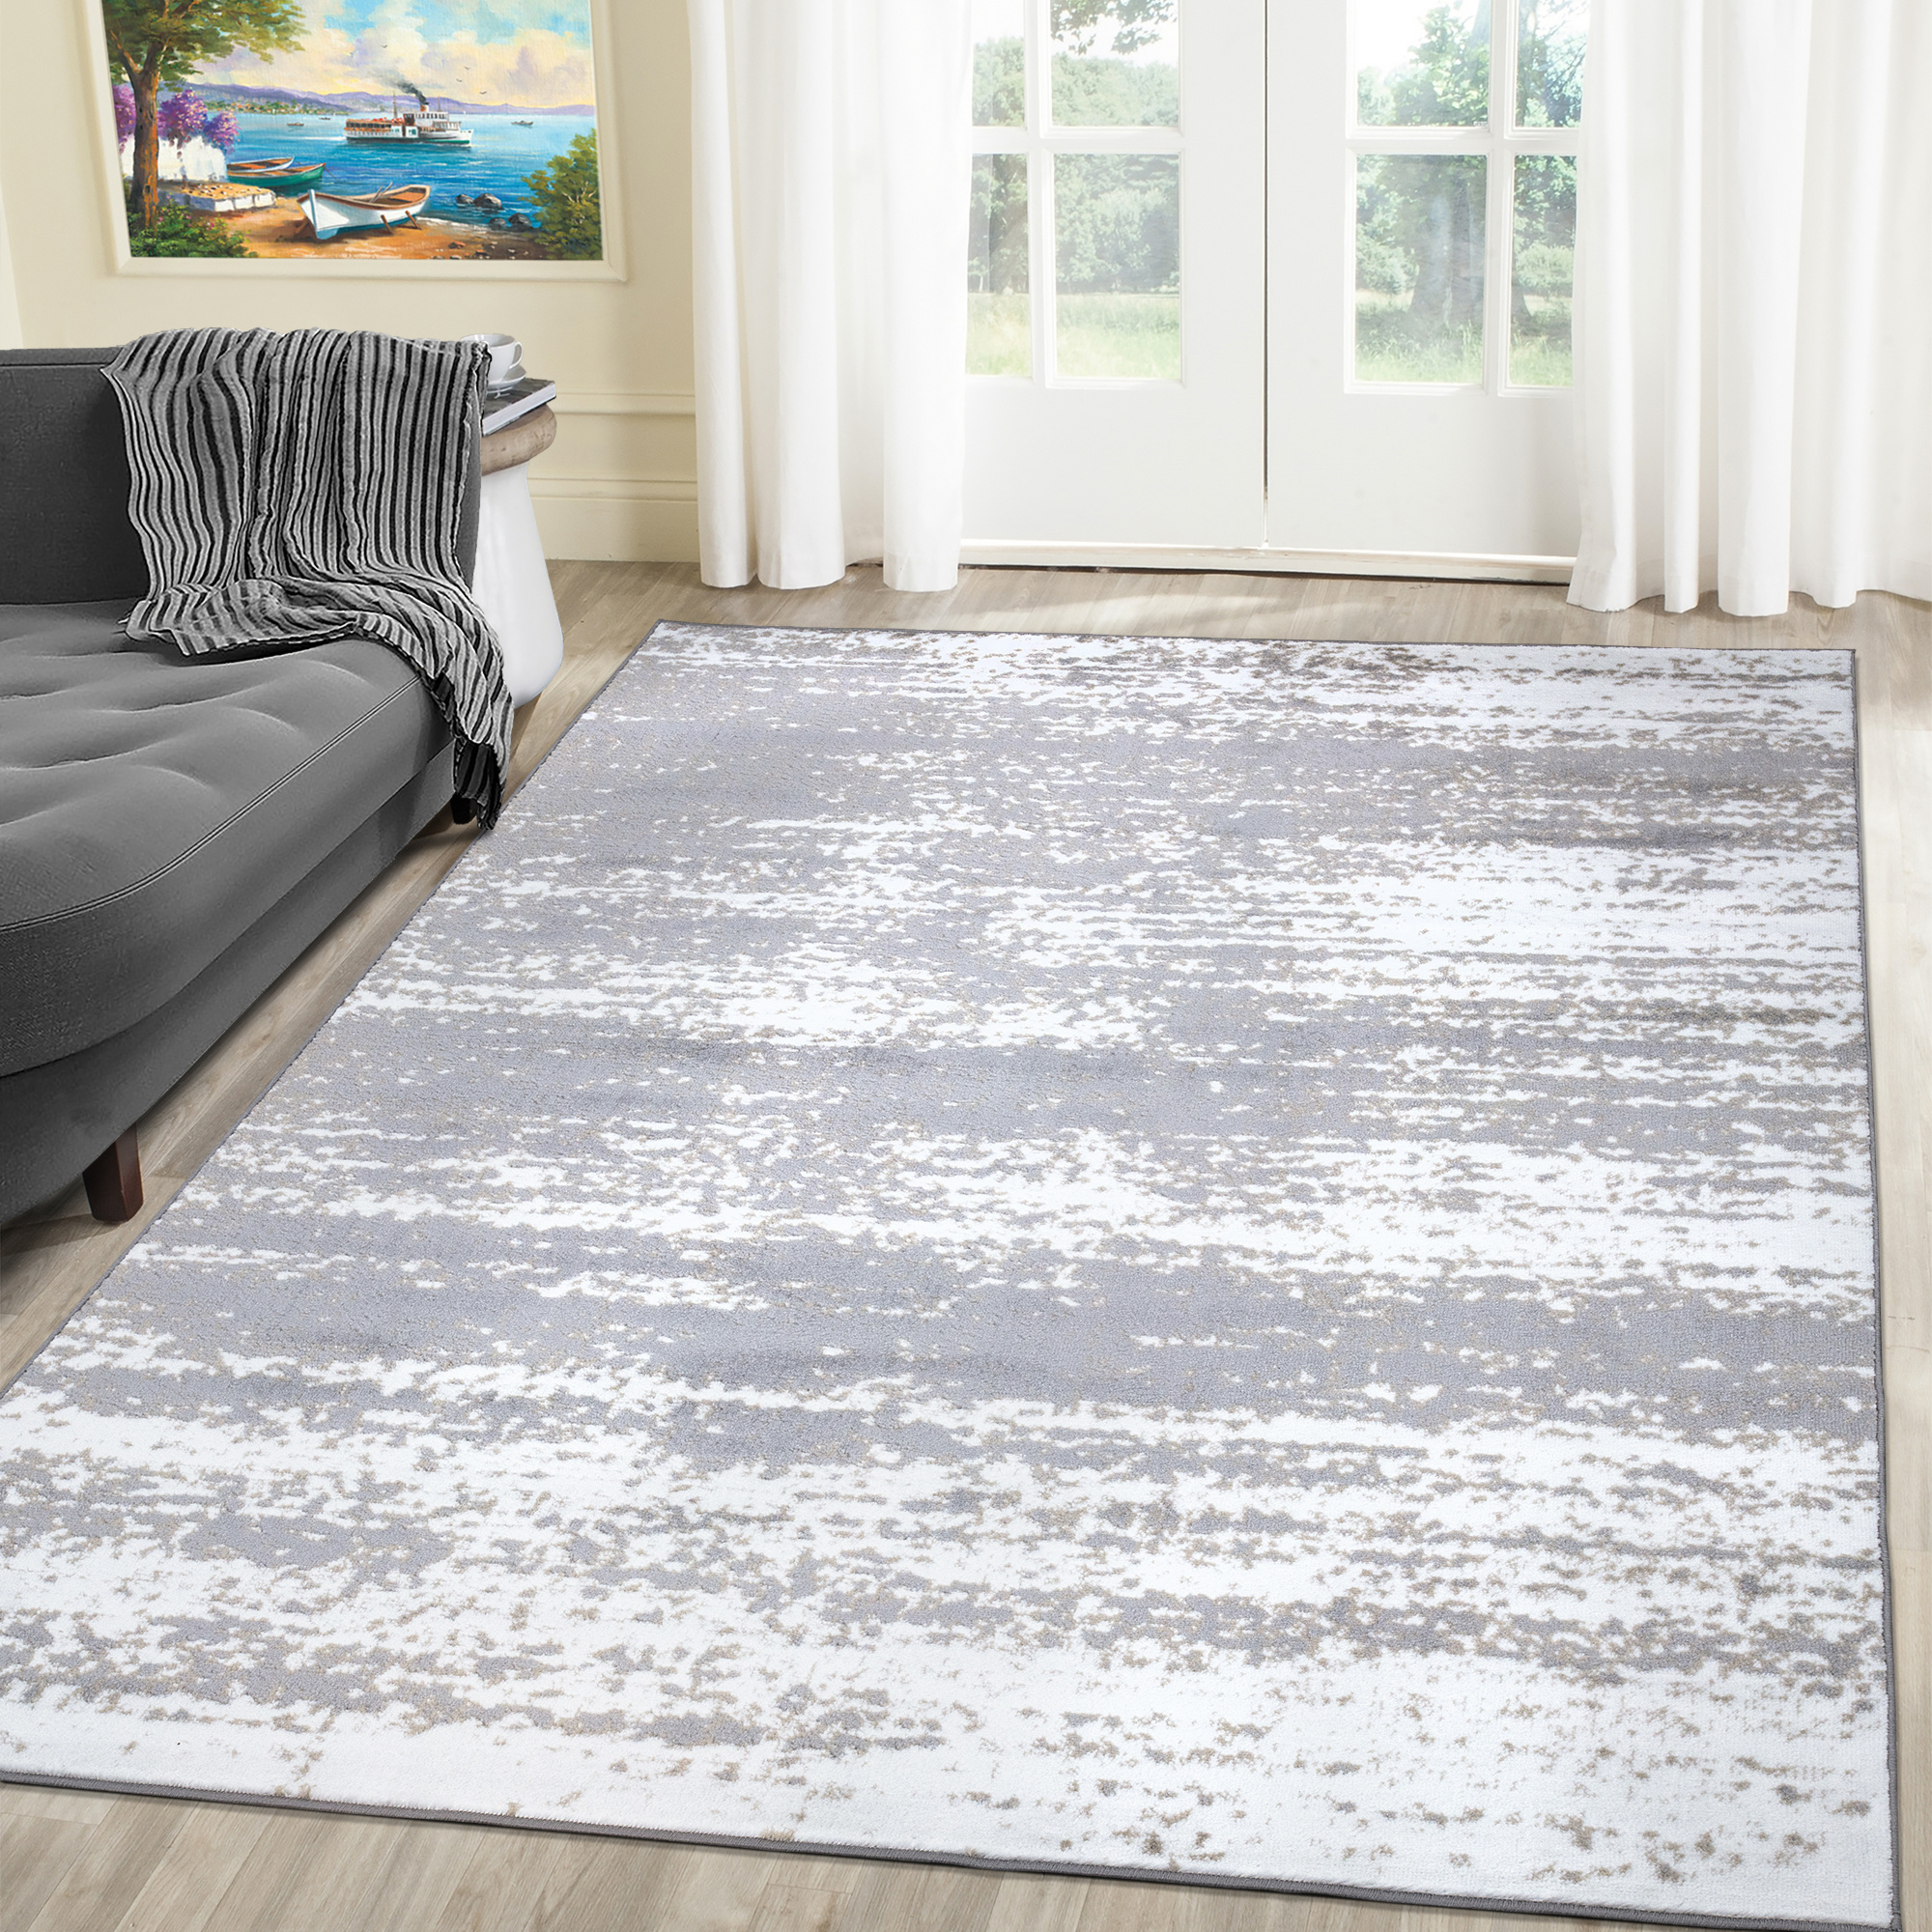 A2z Palma 1787 Contemporary Abstract Office Kitchen Large Area Rug Carpet Tapis Walmart Canada